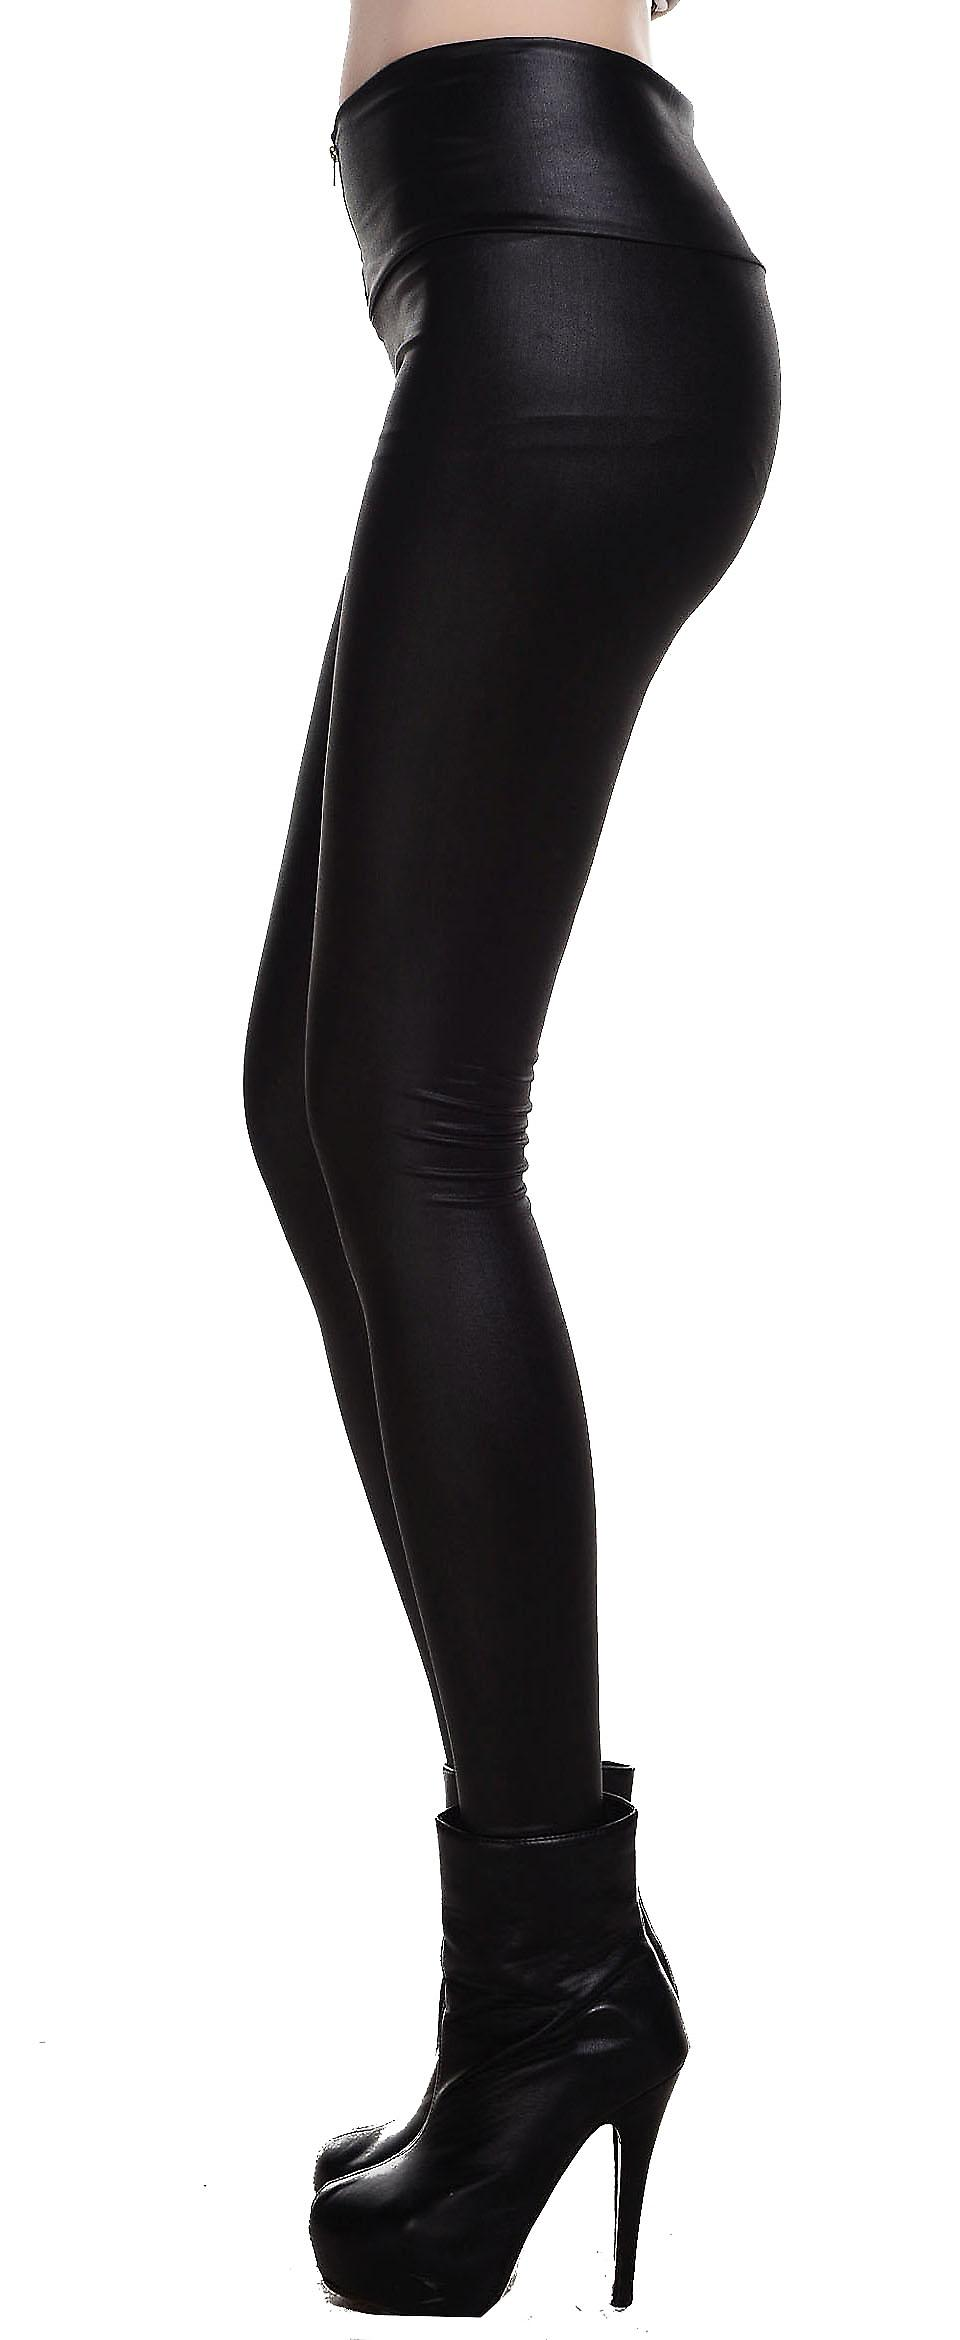 Waooh - Fashion - leggings leatherette zipper at the front